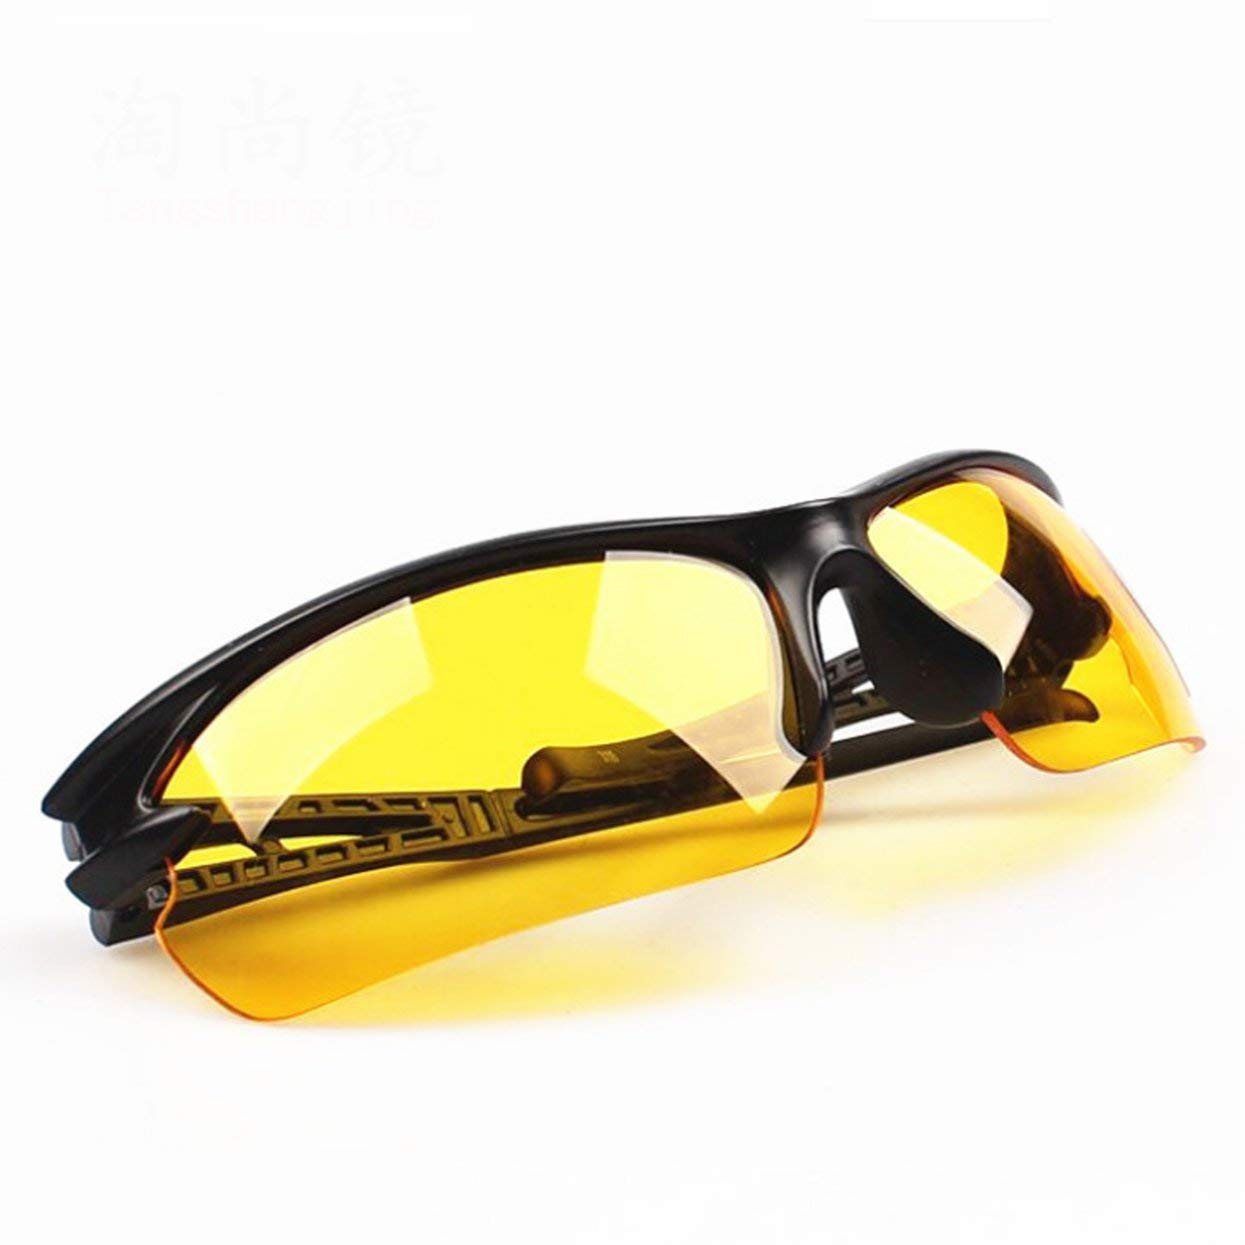 Driving Sunglasses Fashion Style Gentlemen Cool Protecting Eyes Glasses Durable Sports Day Night Vision Sunglasses LoveOlvidoY